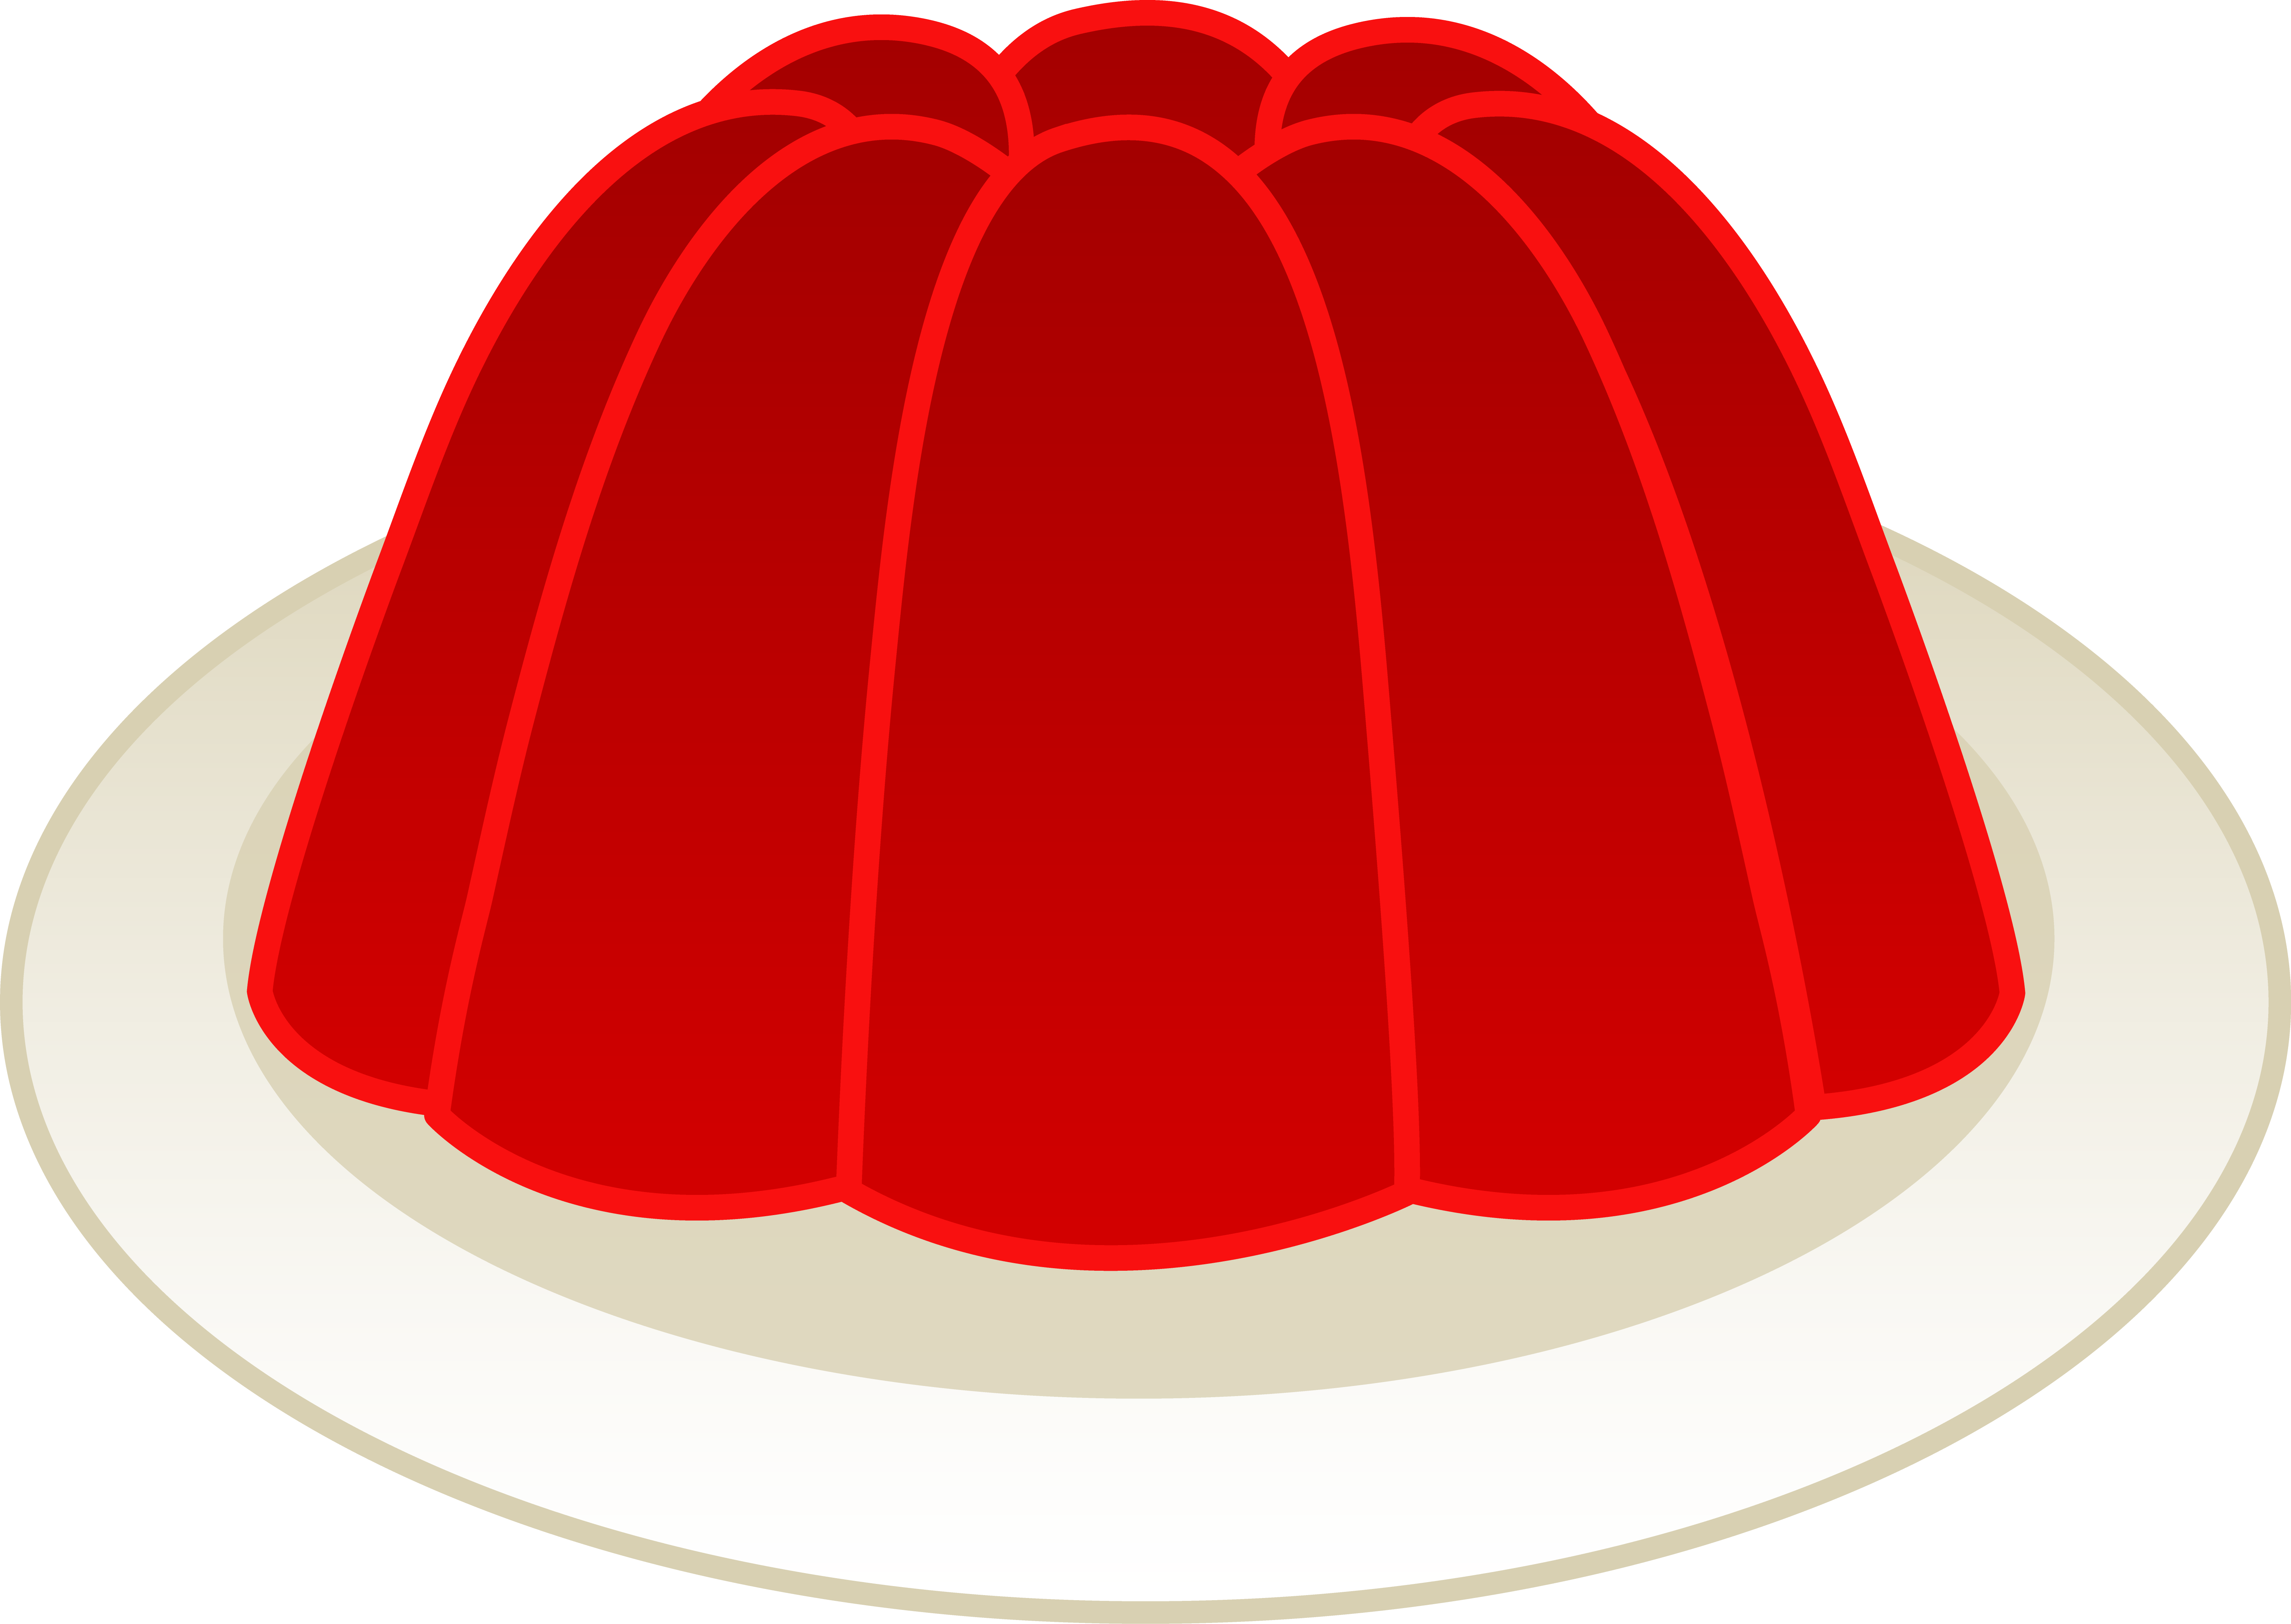 Jellies clipart Image Gallery clip  art